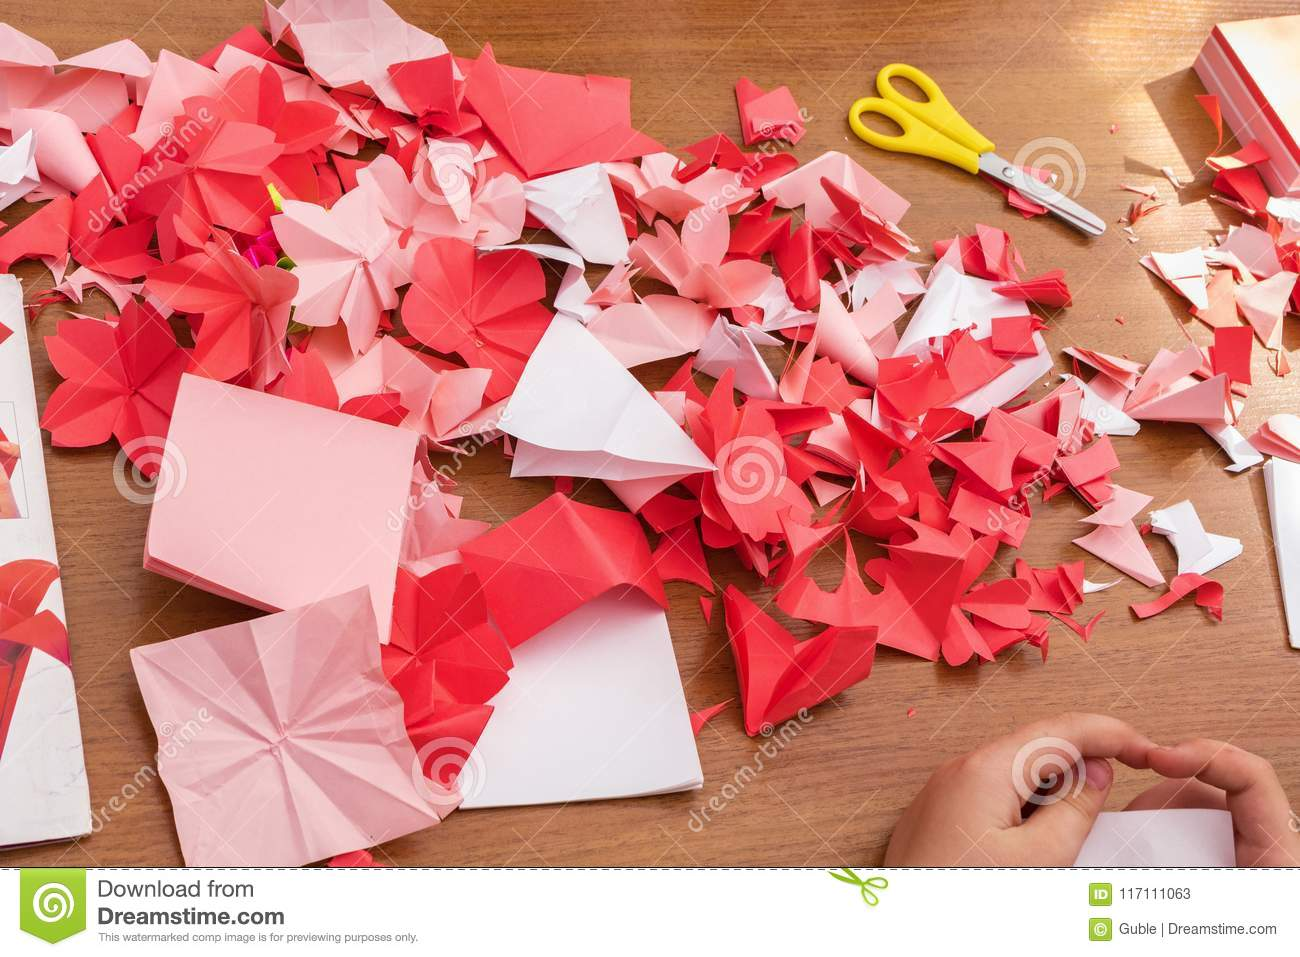 Cut Flowers From Paper Creating Origami Flowers Stock Image Image